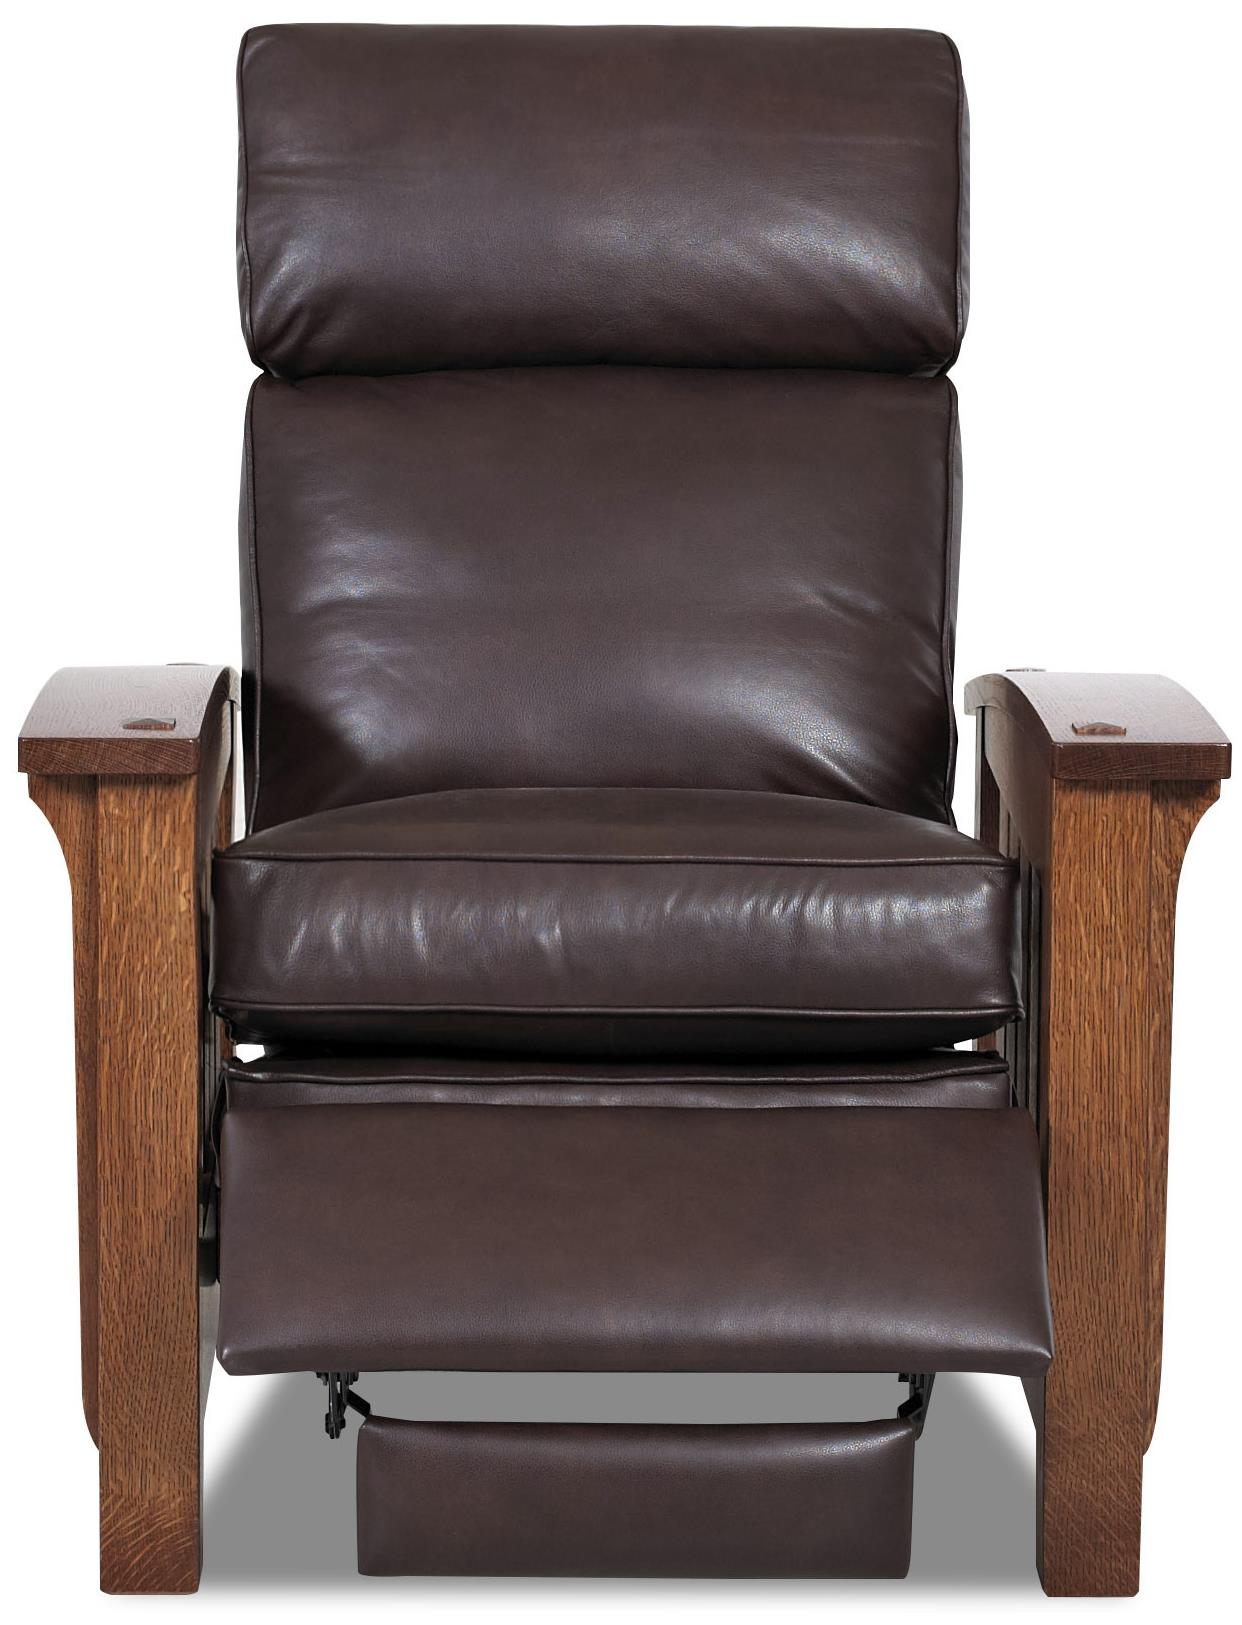 Miraculous Comfort Design Palmer Ii High Leg Recliner With Push On Arm Ibusinesslaw Wood Chair Design Ideas Ibusinesslaworg